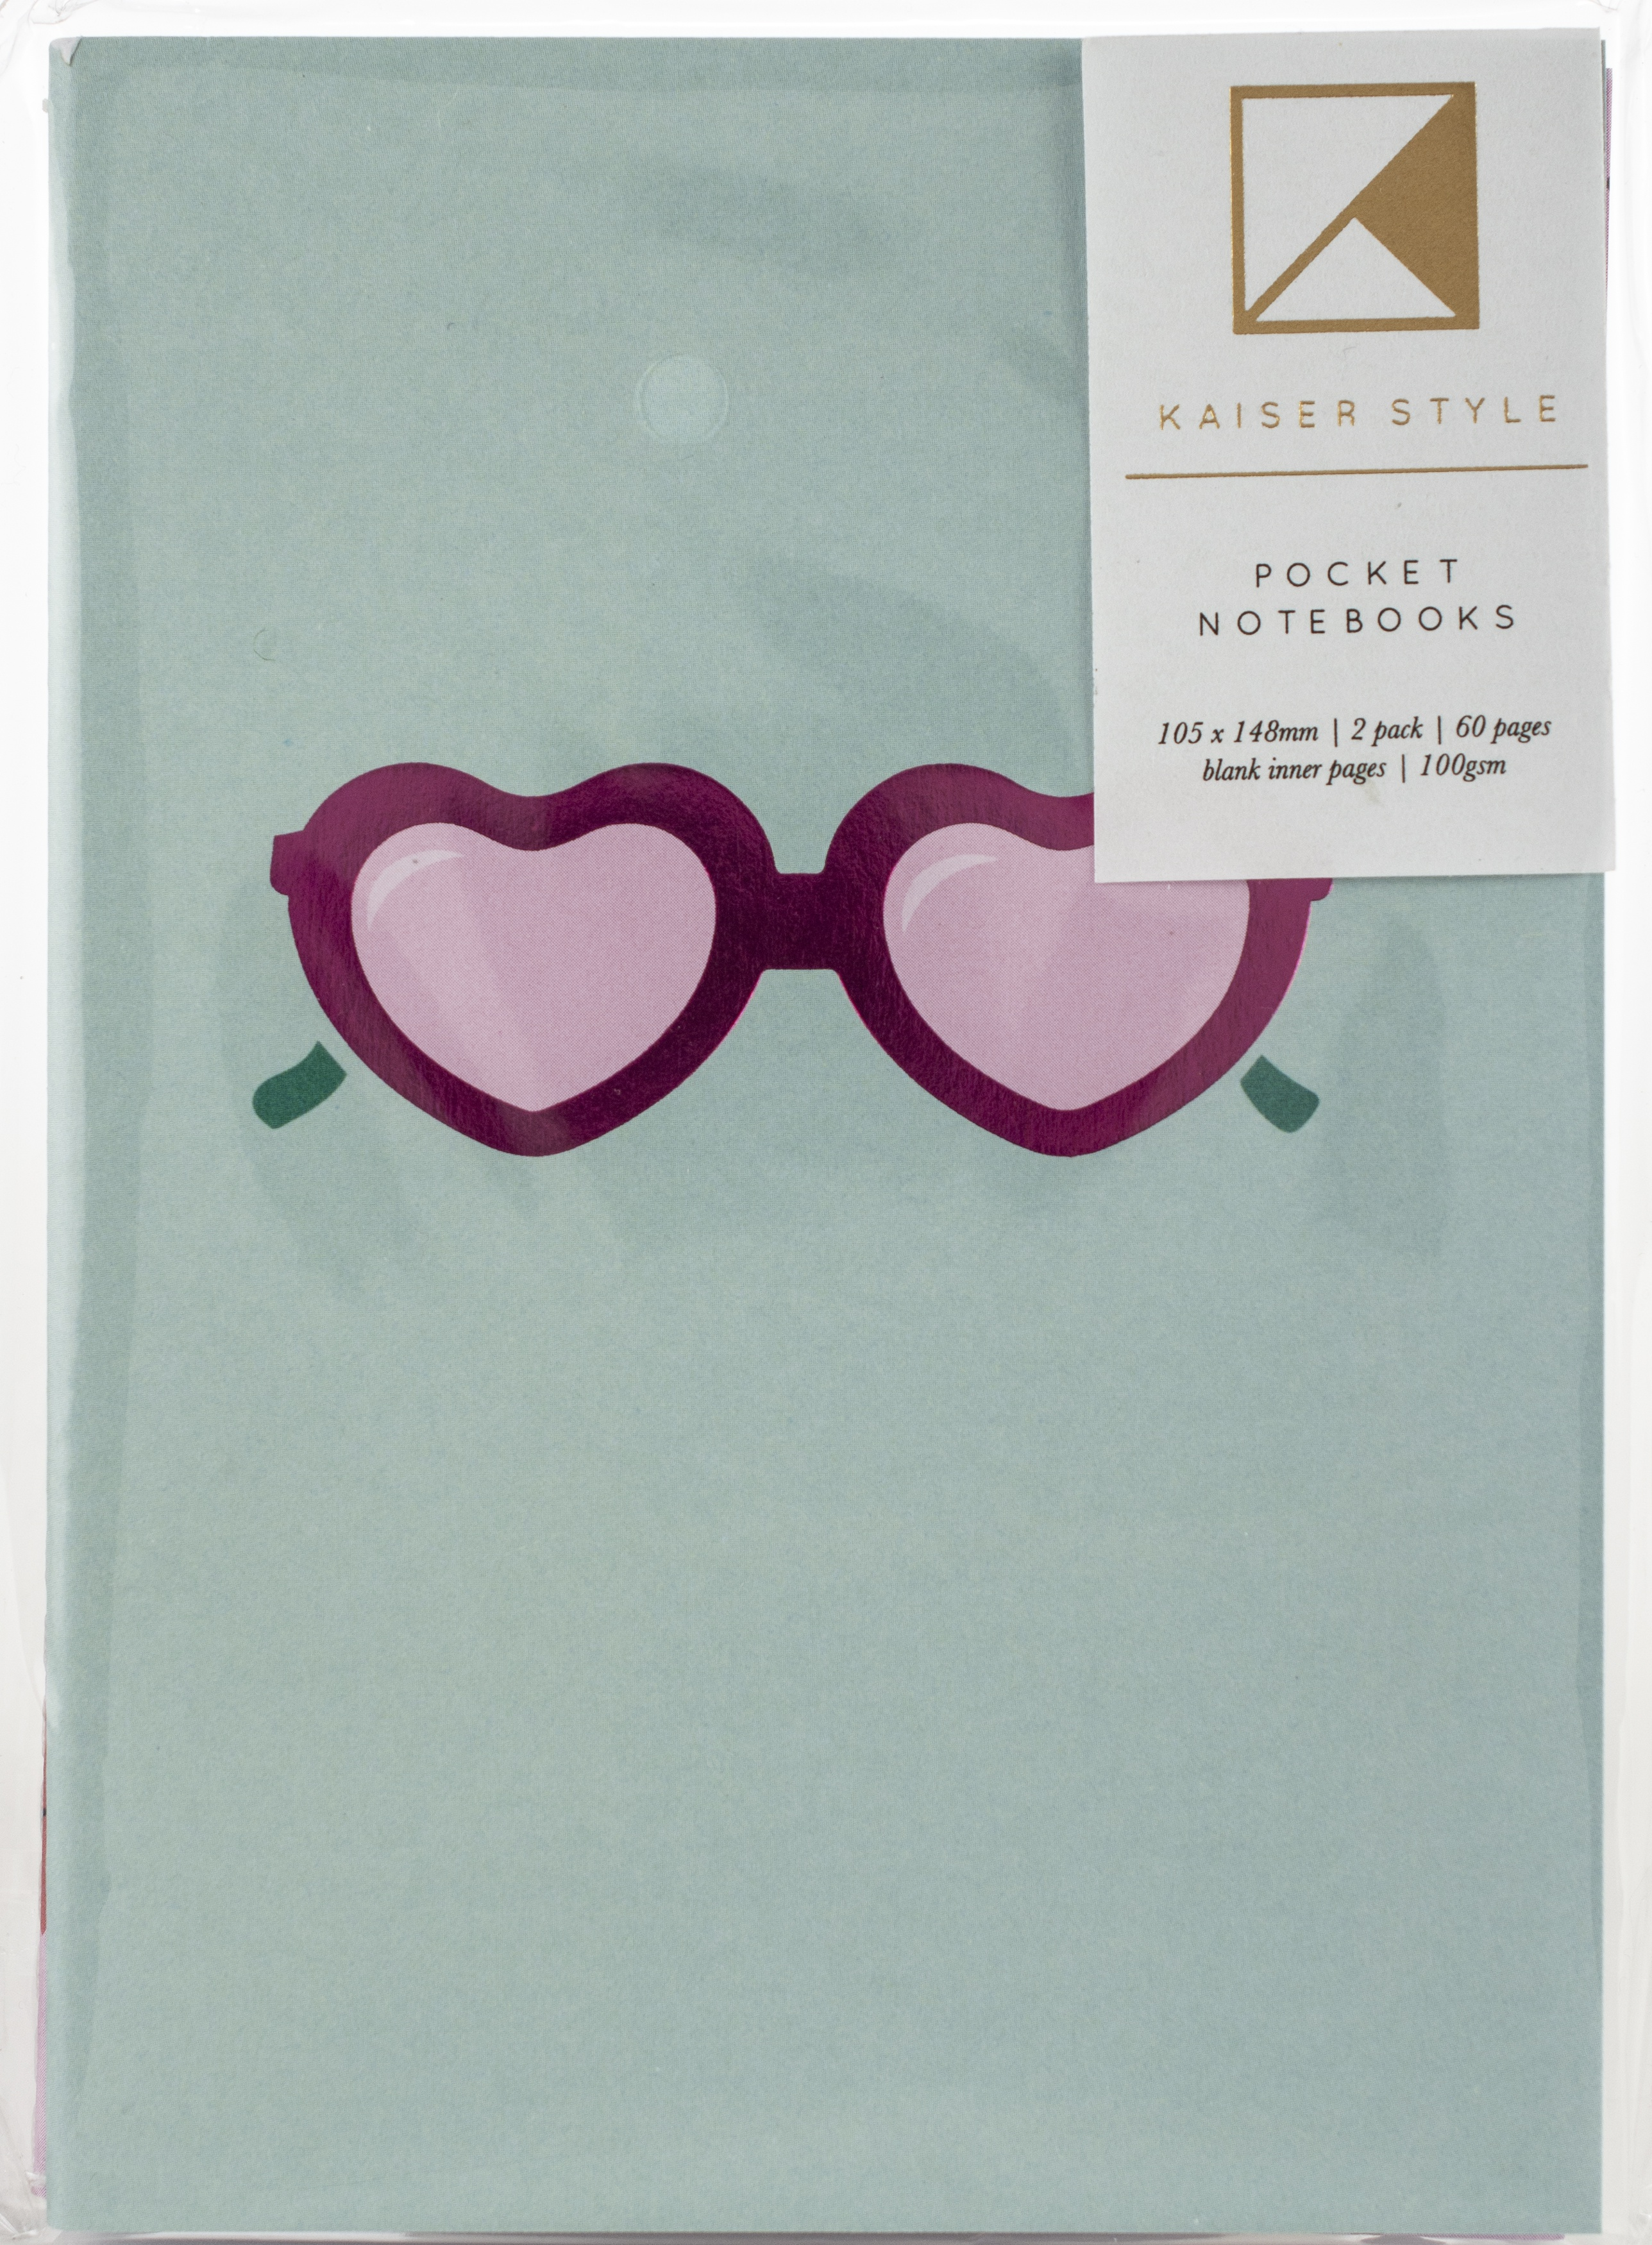 Kaiser Style Pocket Notebooks 4X6 60 Pages 2/Pkg-Glorious; Blank